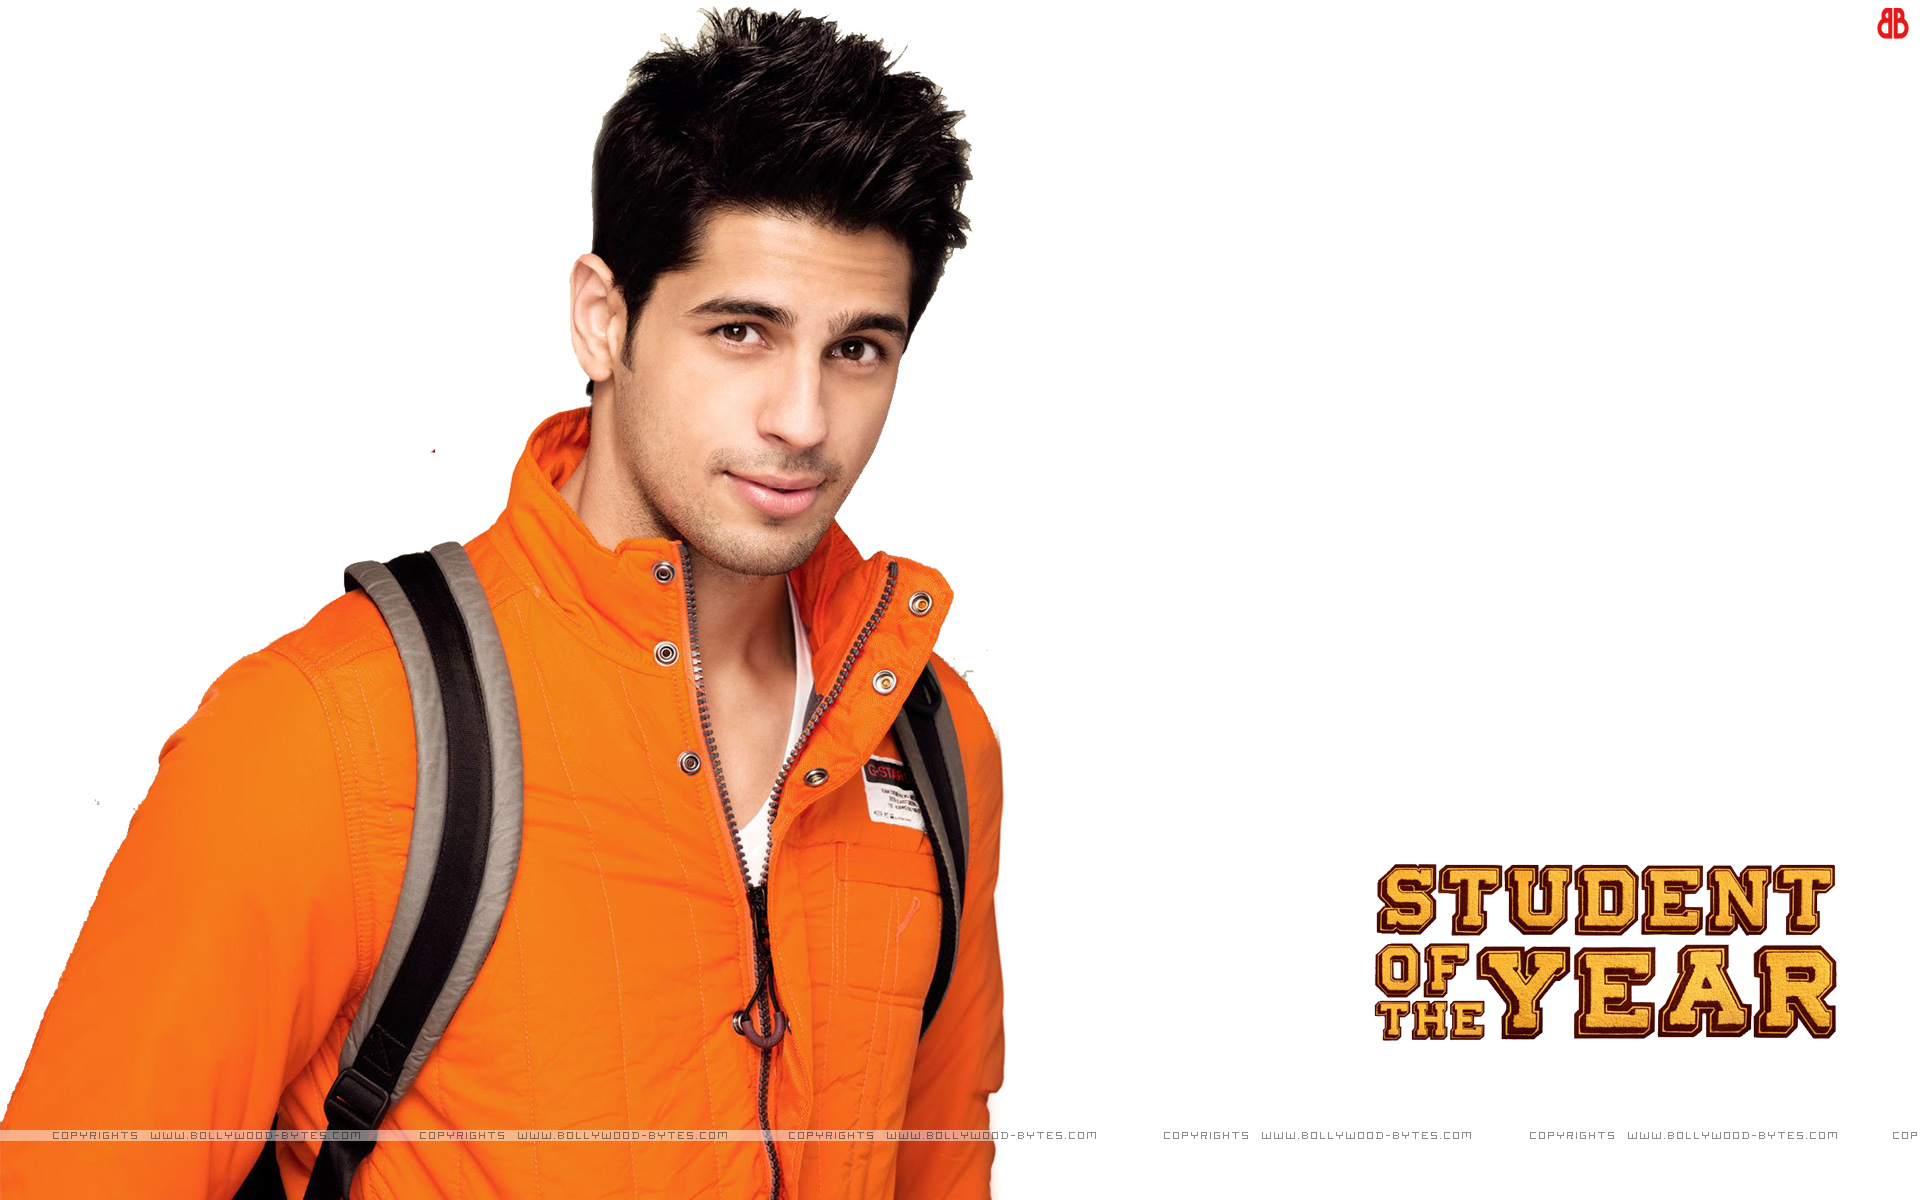 http://3.bp.blogspot.com/-DRn5H4t-G6E/UGtDp_Hj50I/AAAAAAAAQd0/BgKrJ_fCRK8/s1920/Student-Of-The-Year-+Hot-Sidharth-Malhotra-HD-Wallaper-37.jpg